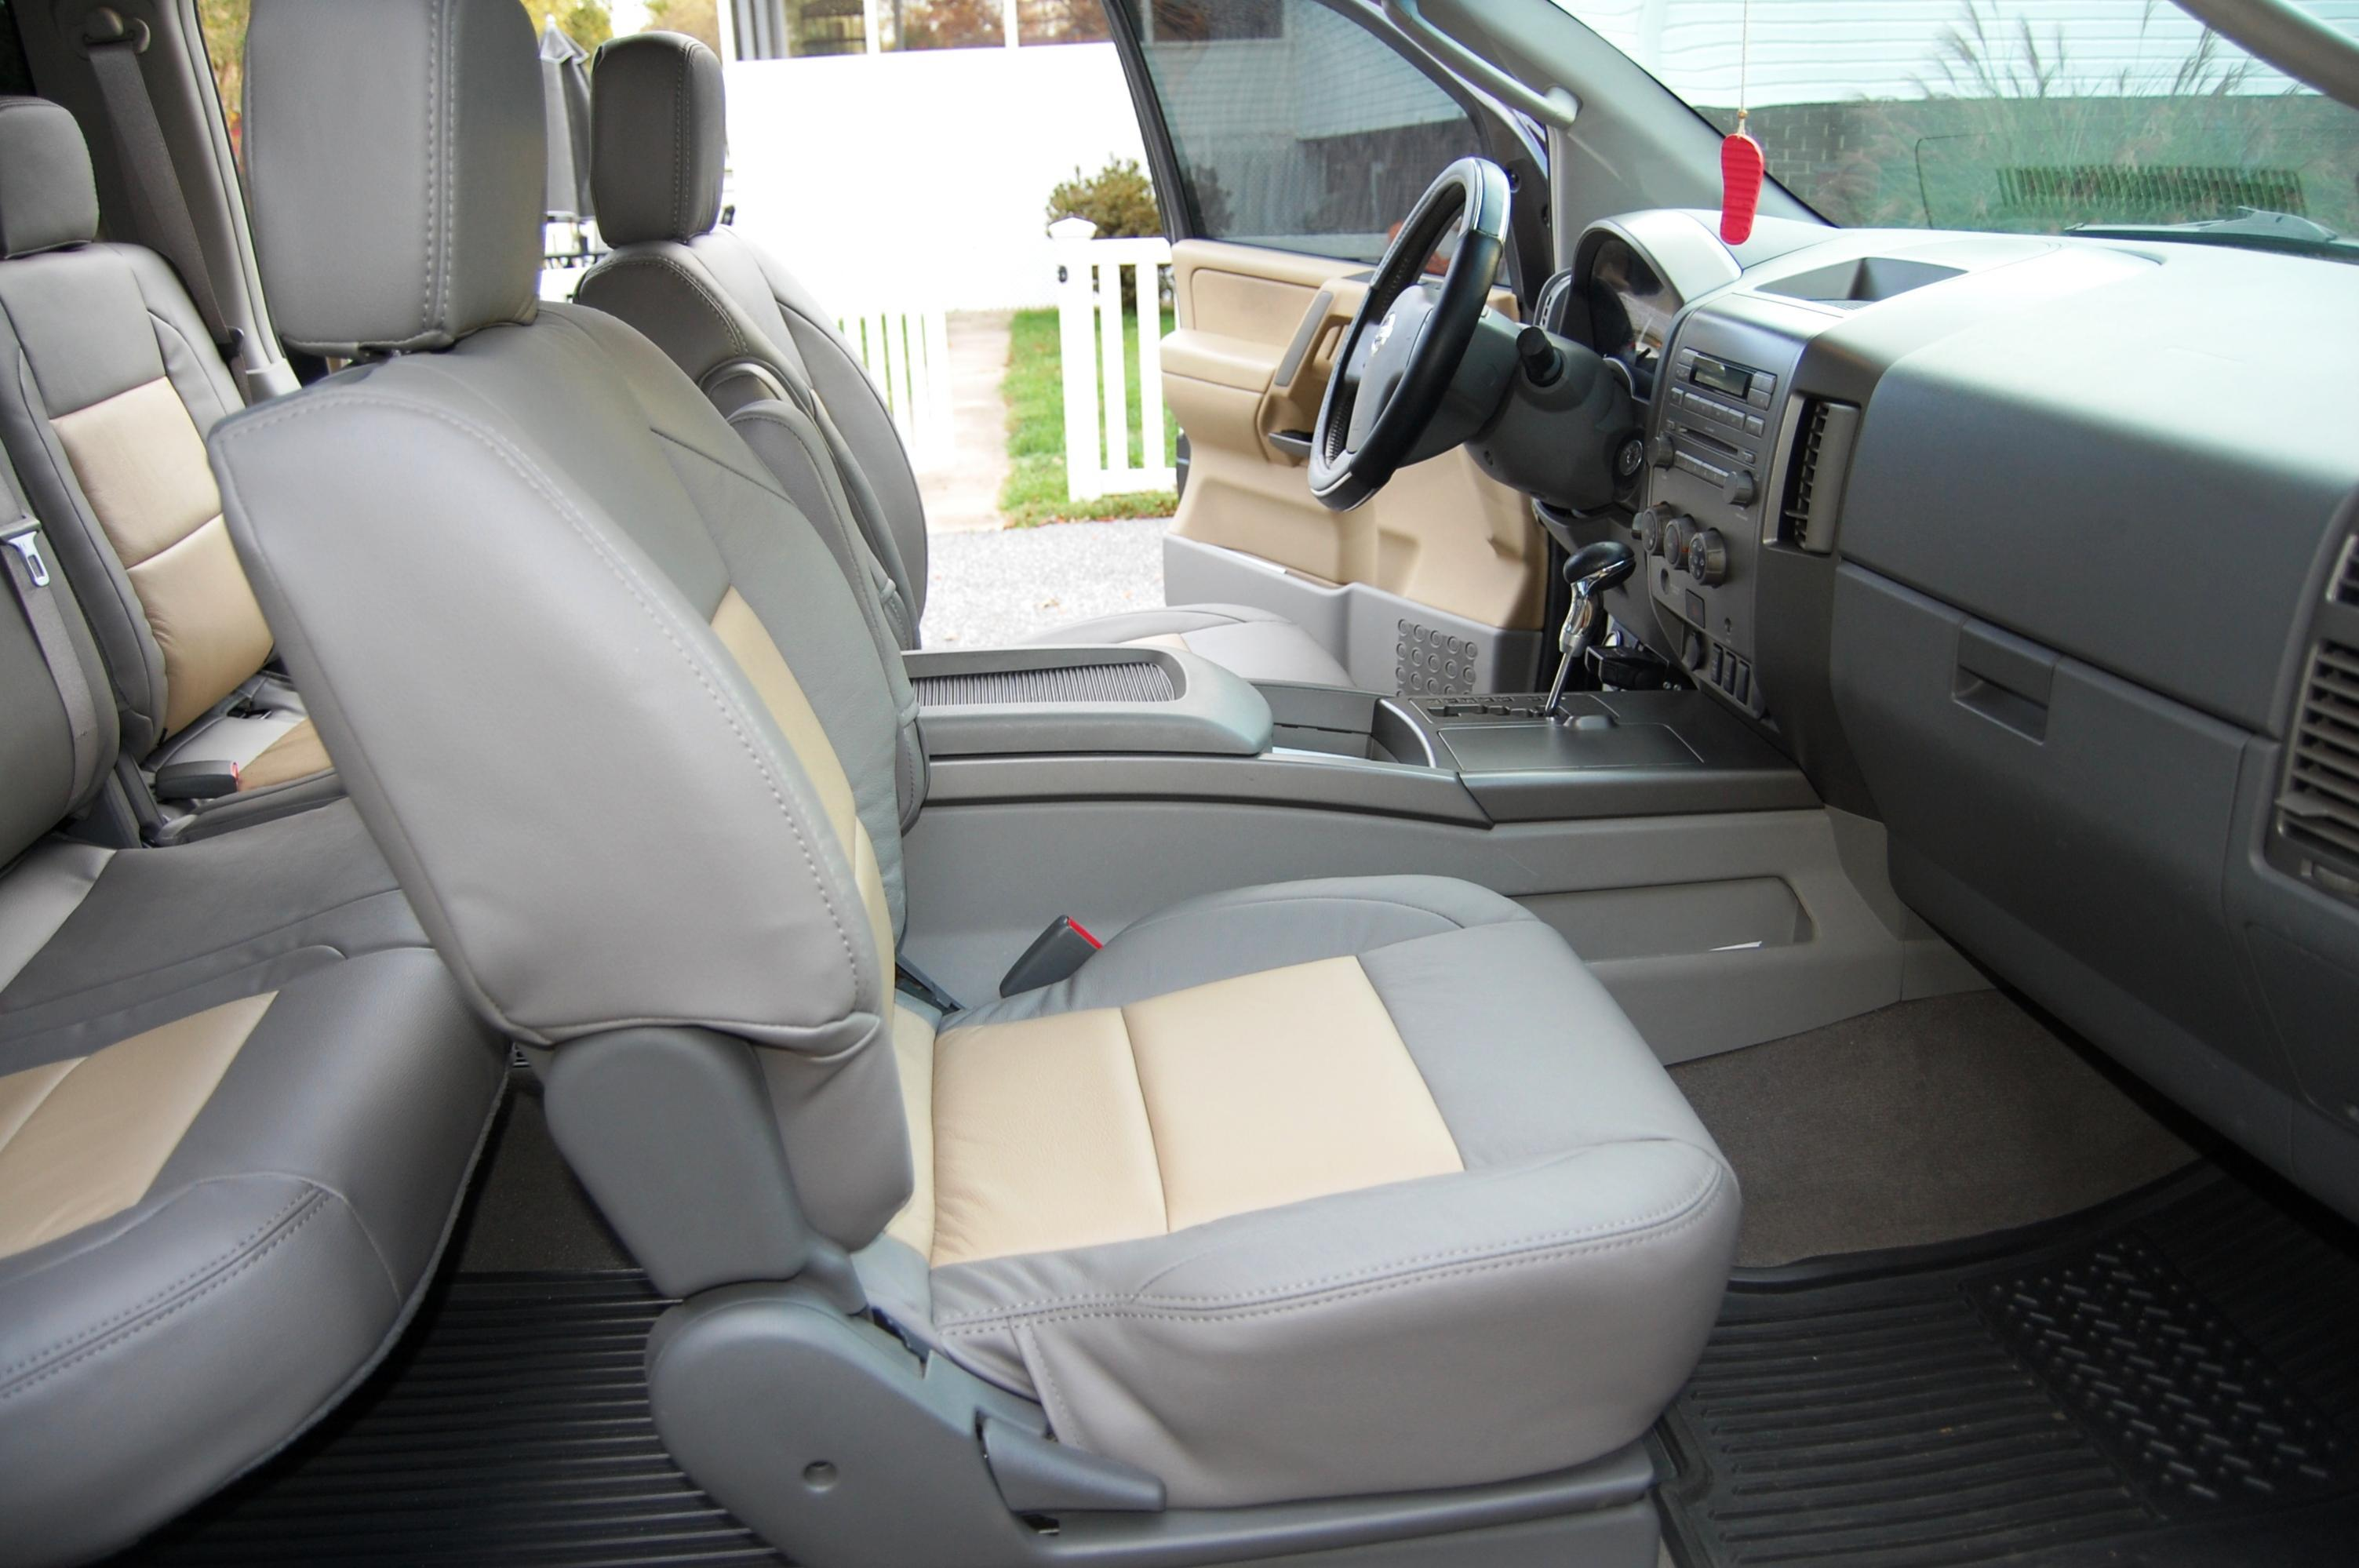 2004 Nissan Titan Leather Seat Covers Velcromag